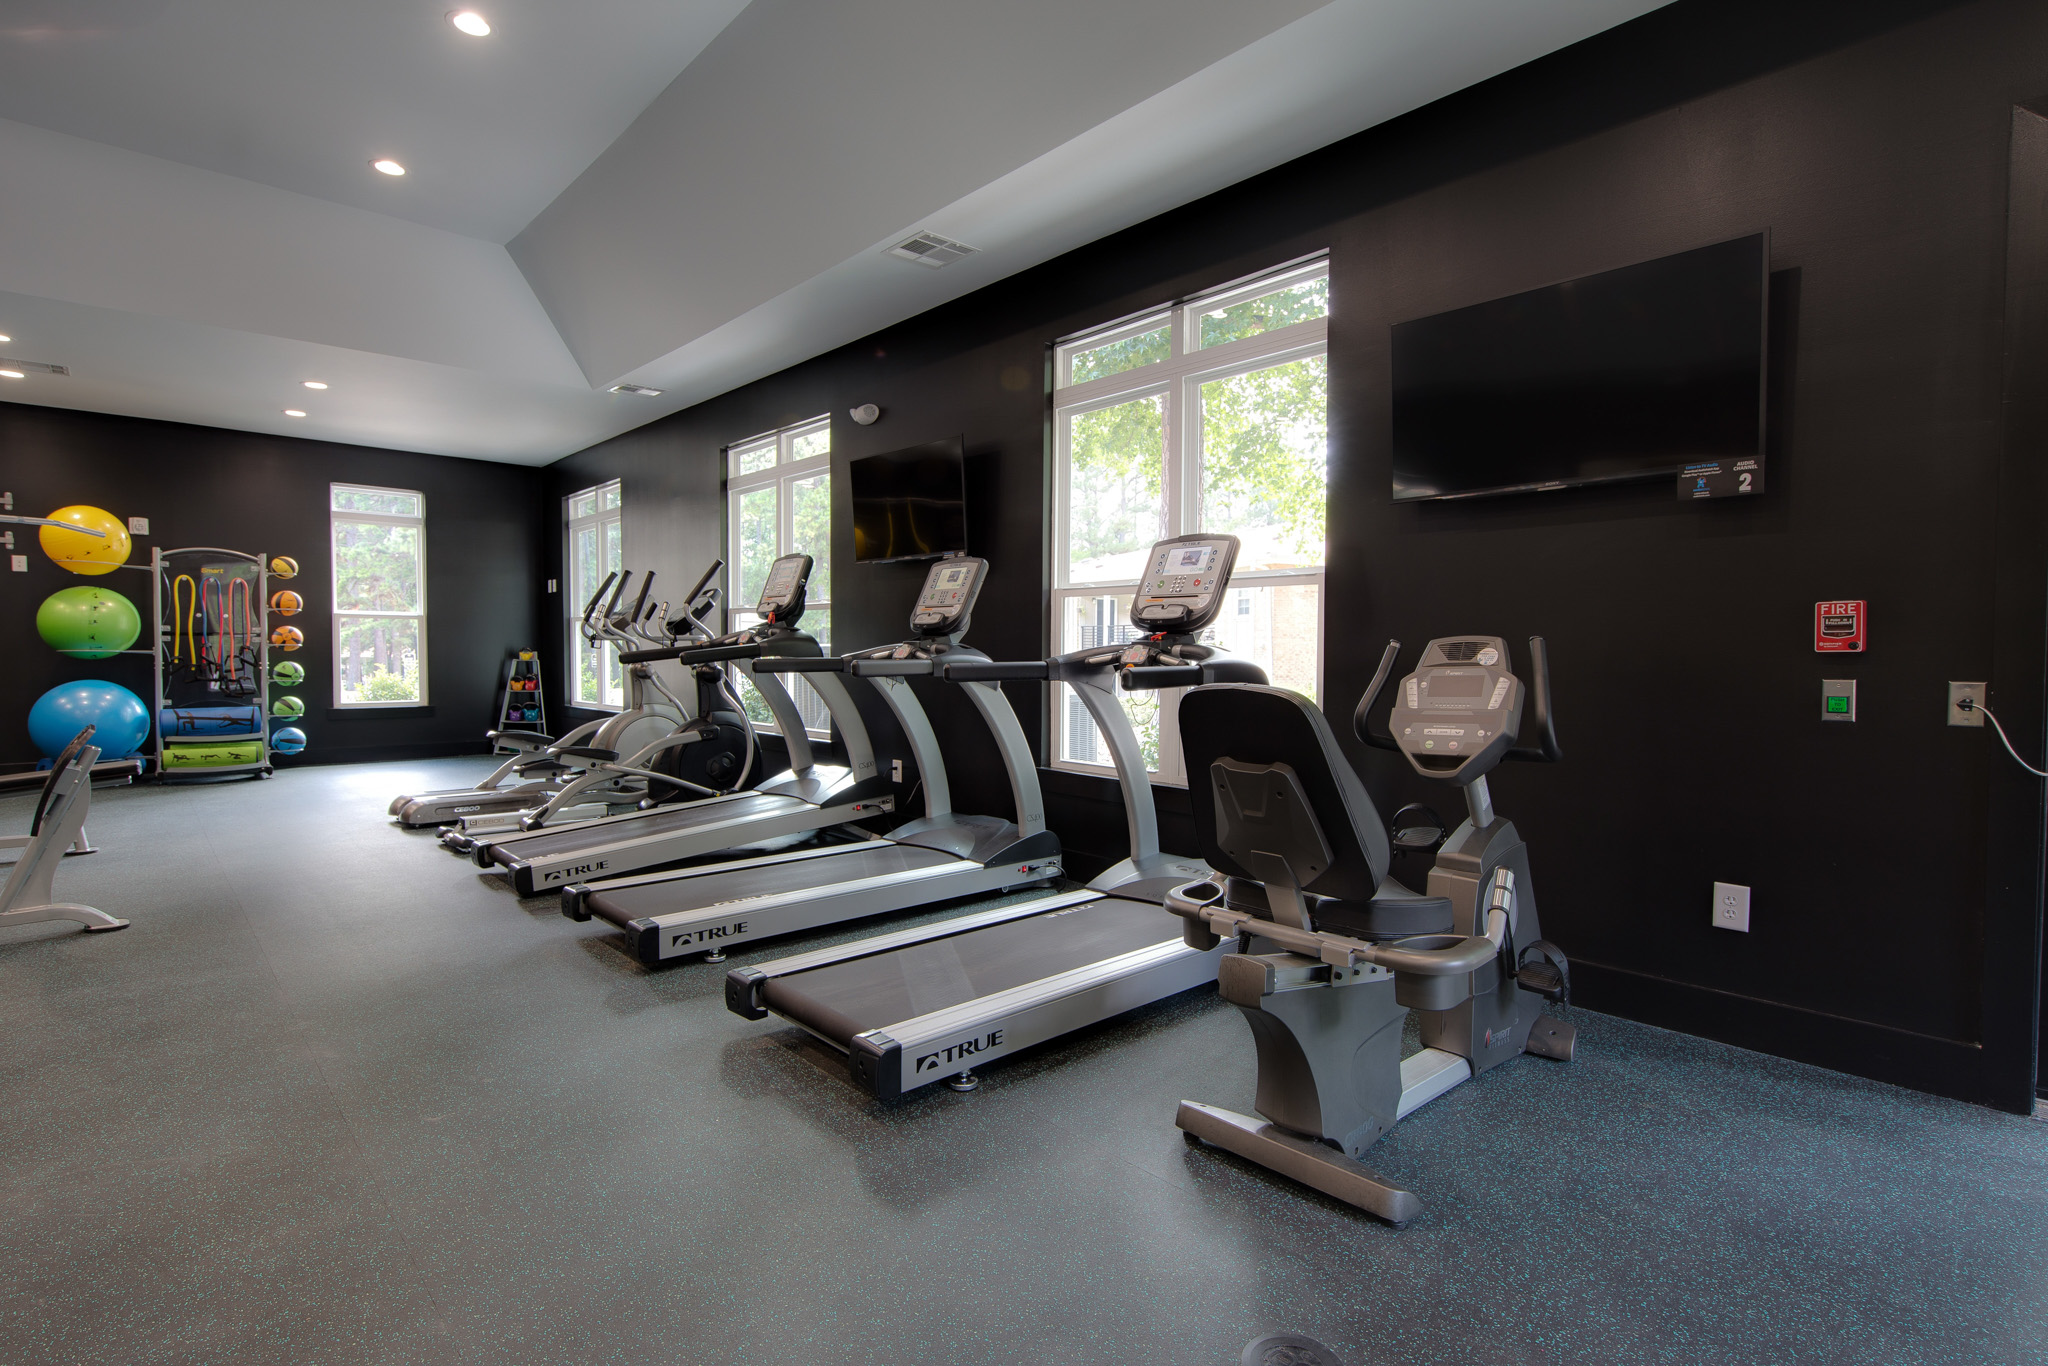 Fitness Center - Shellbrook Apartments | Apartments in Raleigh NC Commercial Photo shoot and Virtual Tour